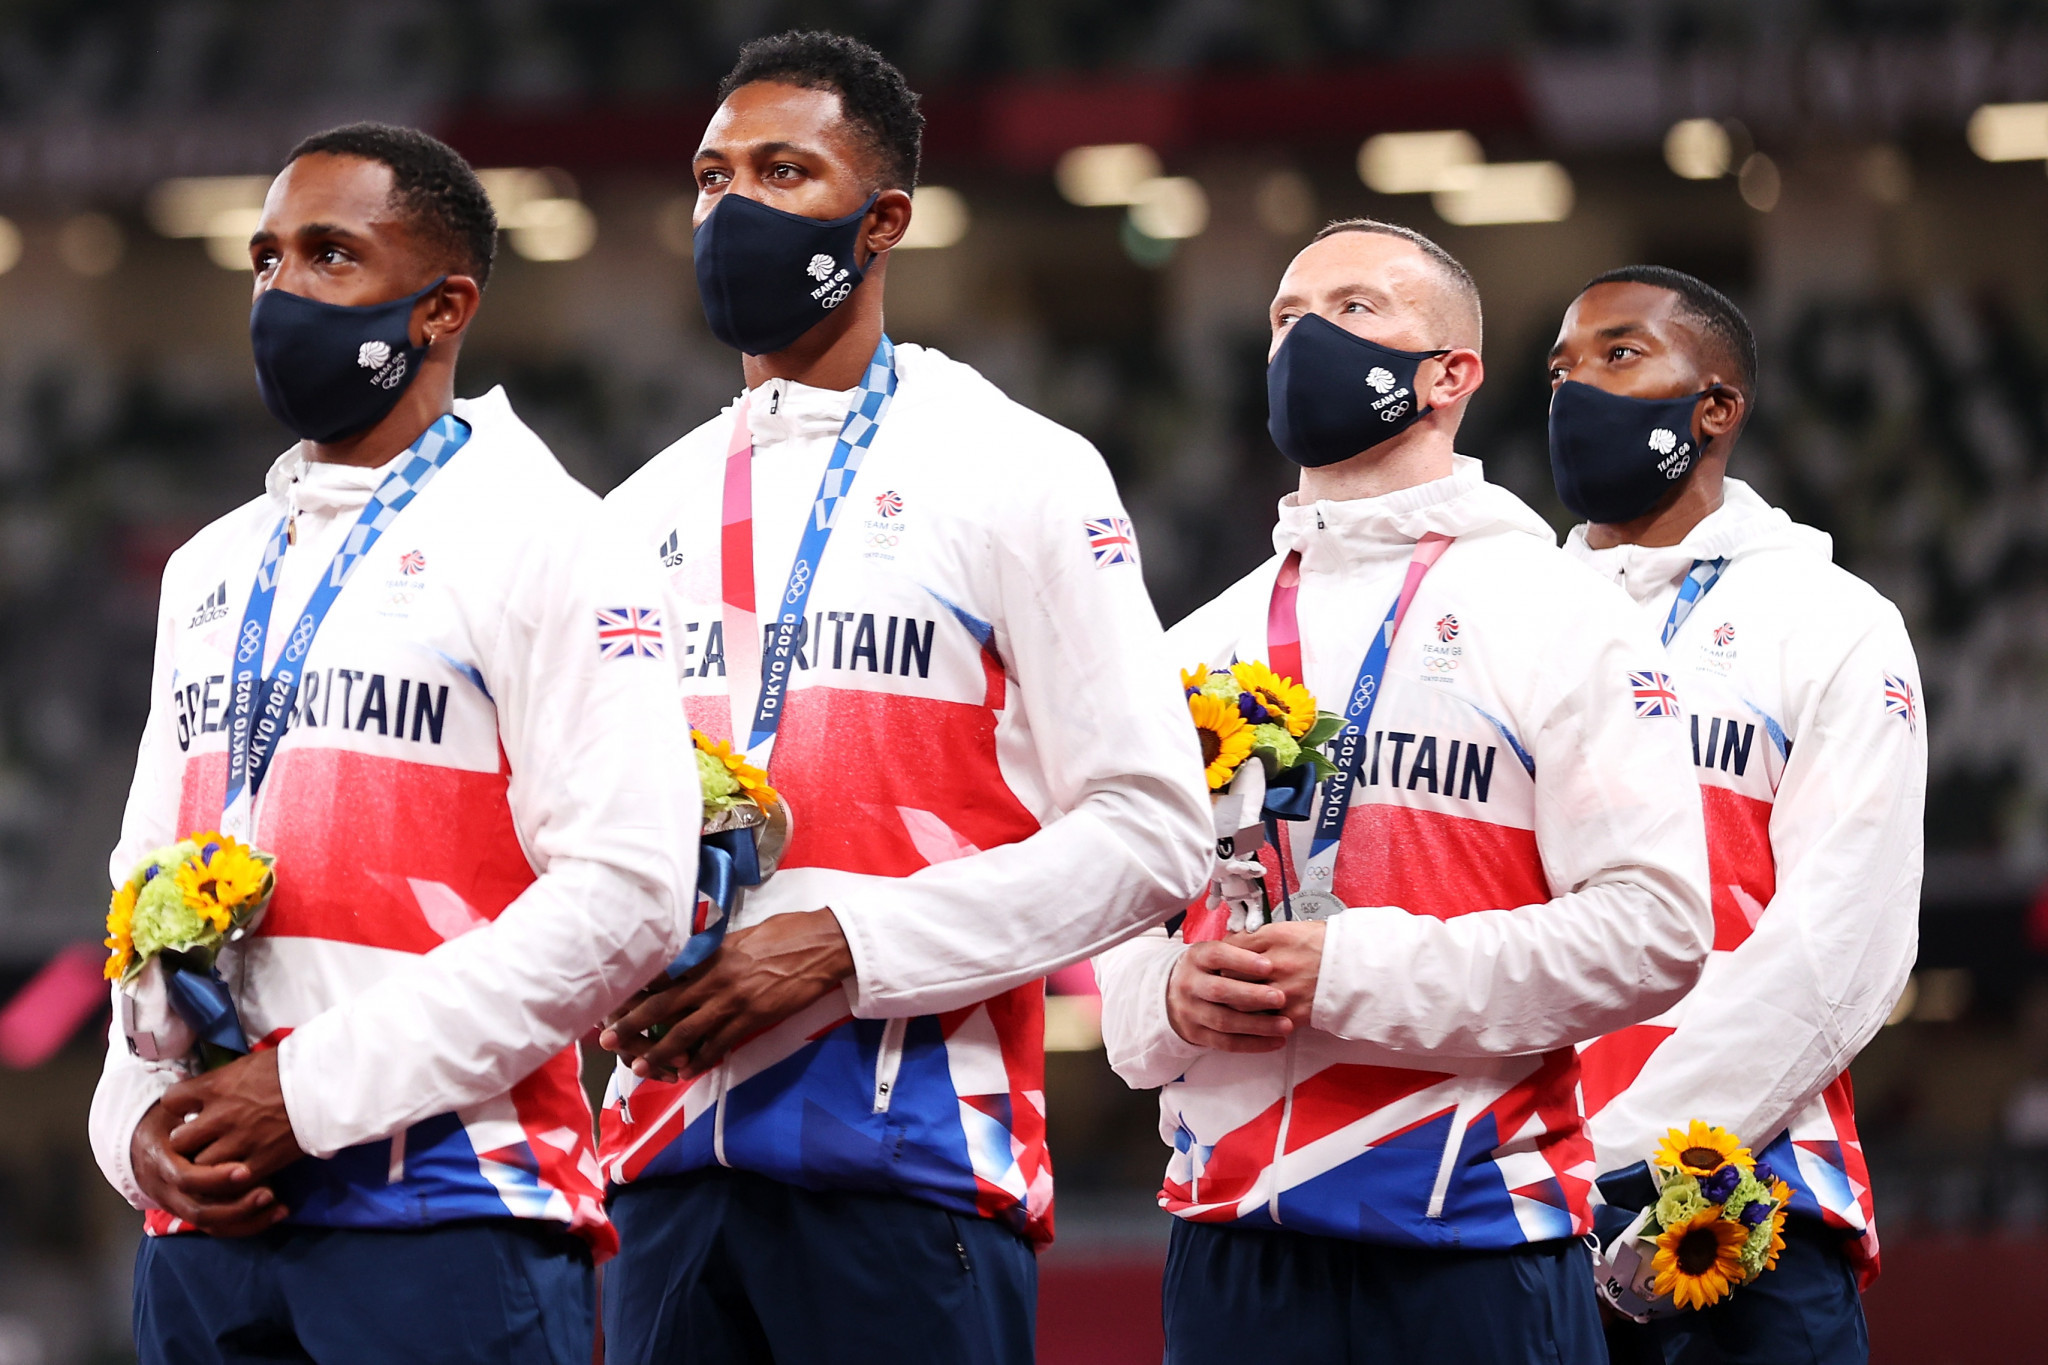 Britain are set to lose their men's 4x100m relay silver medal ©Getty Images